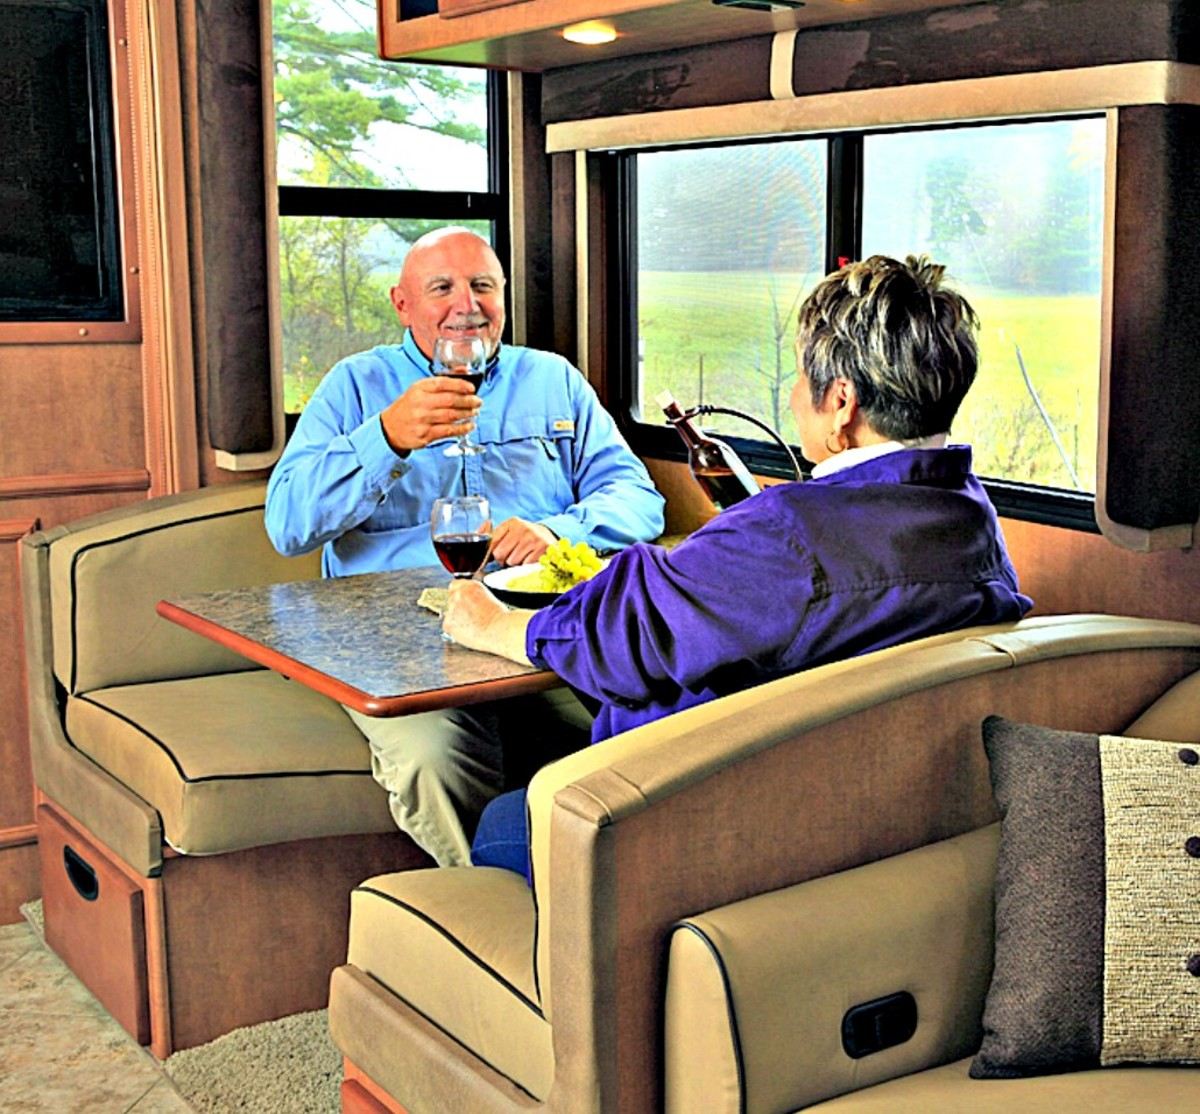 It is important to make your RV as comfortable as possible when traveling in it.